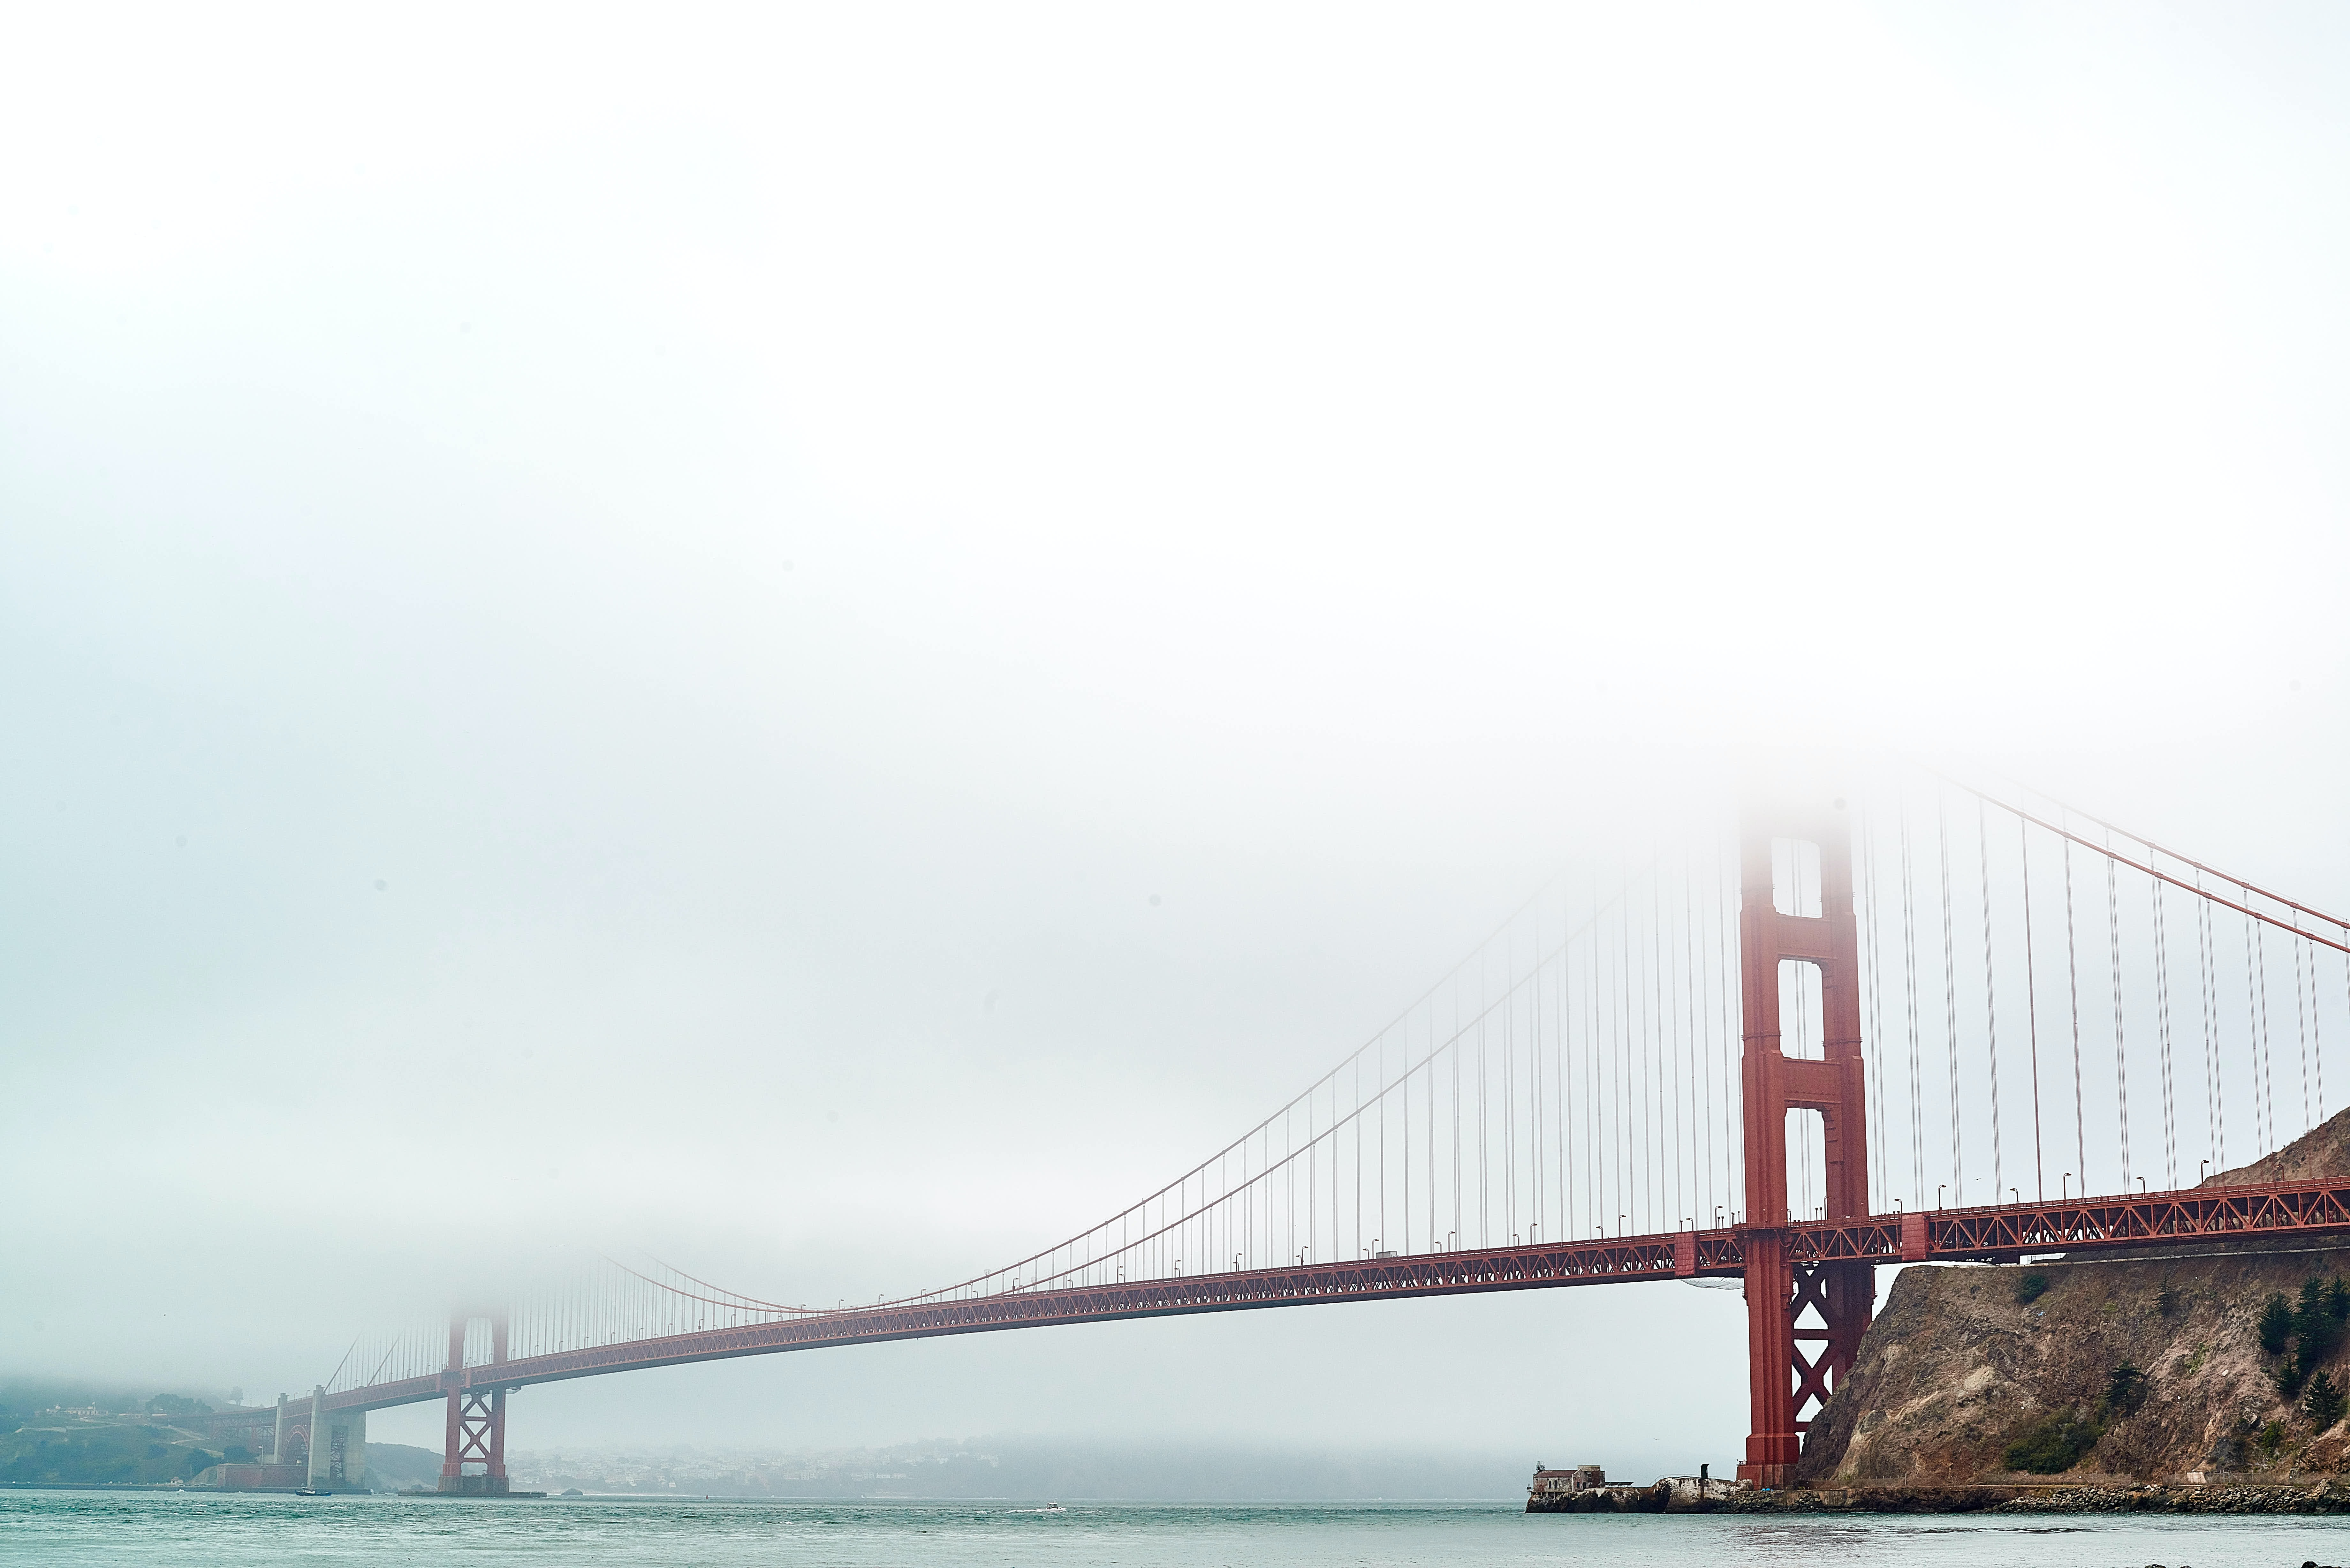 Foggy view of iconic landmark Golden Gate Bridge